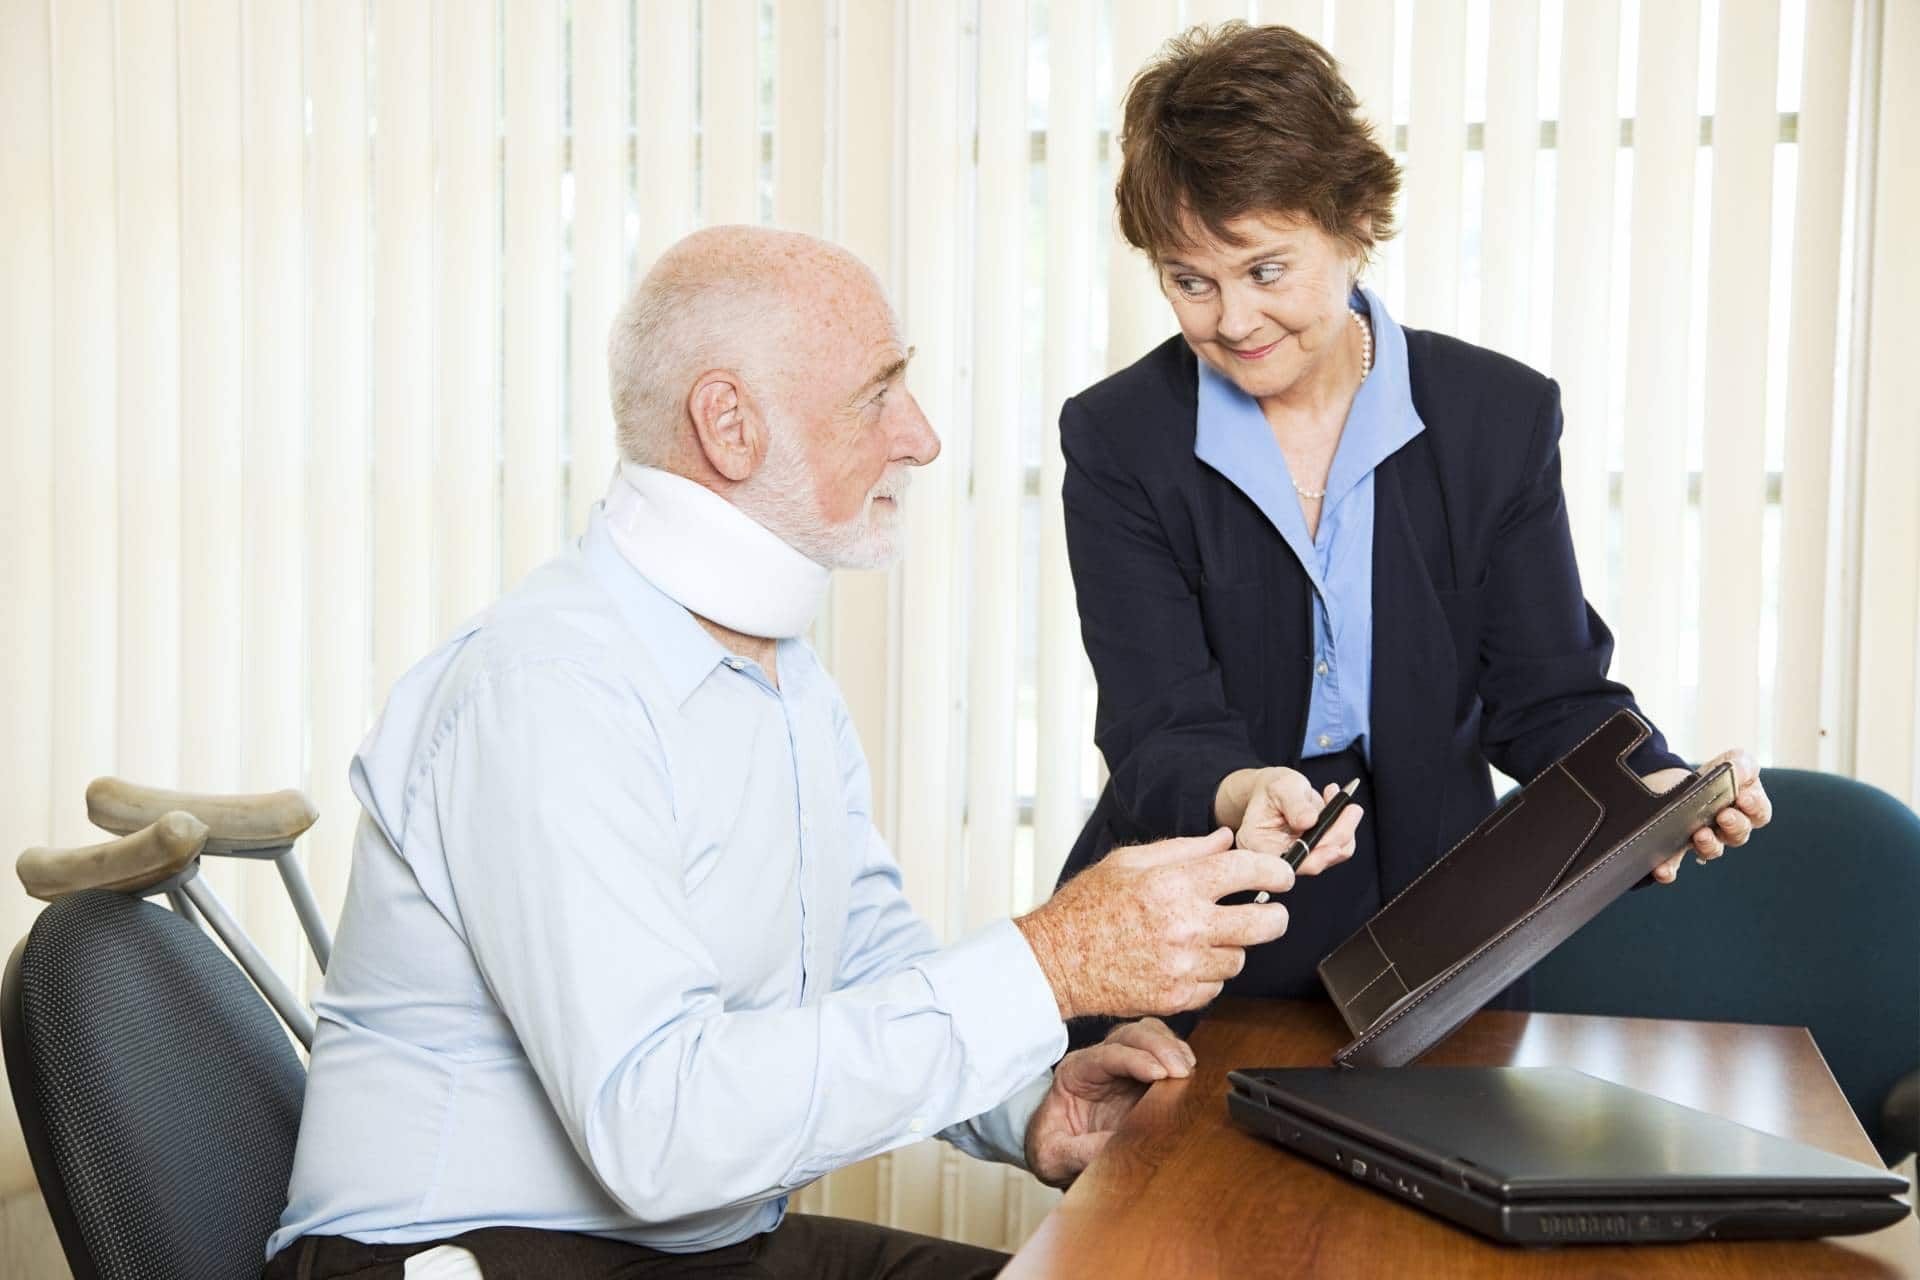 Schedule a free consultation with our personal injury lawyers at the Angell Law Firm in Cartersville.